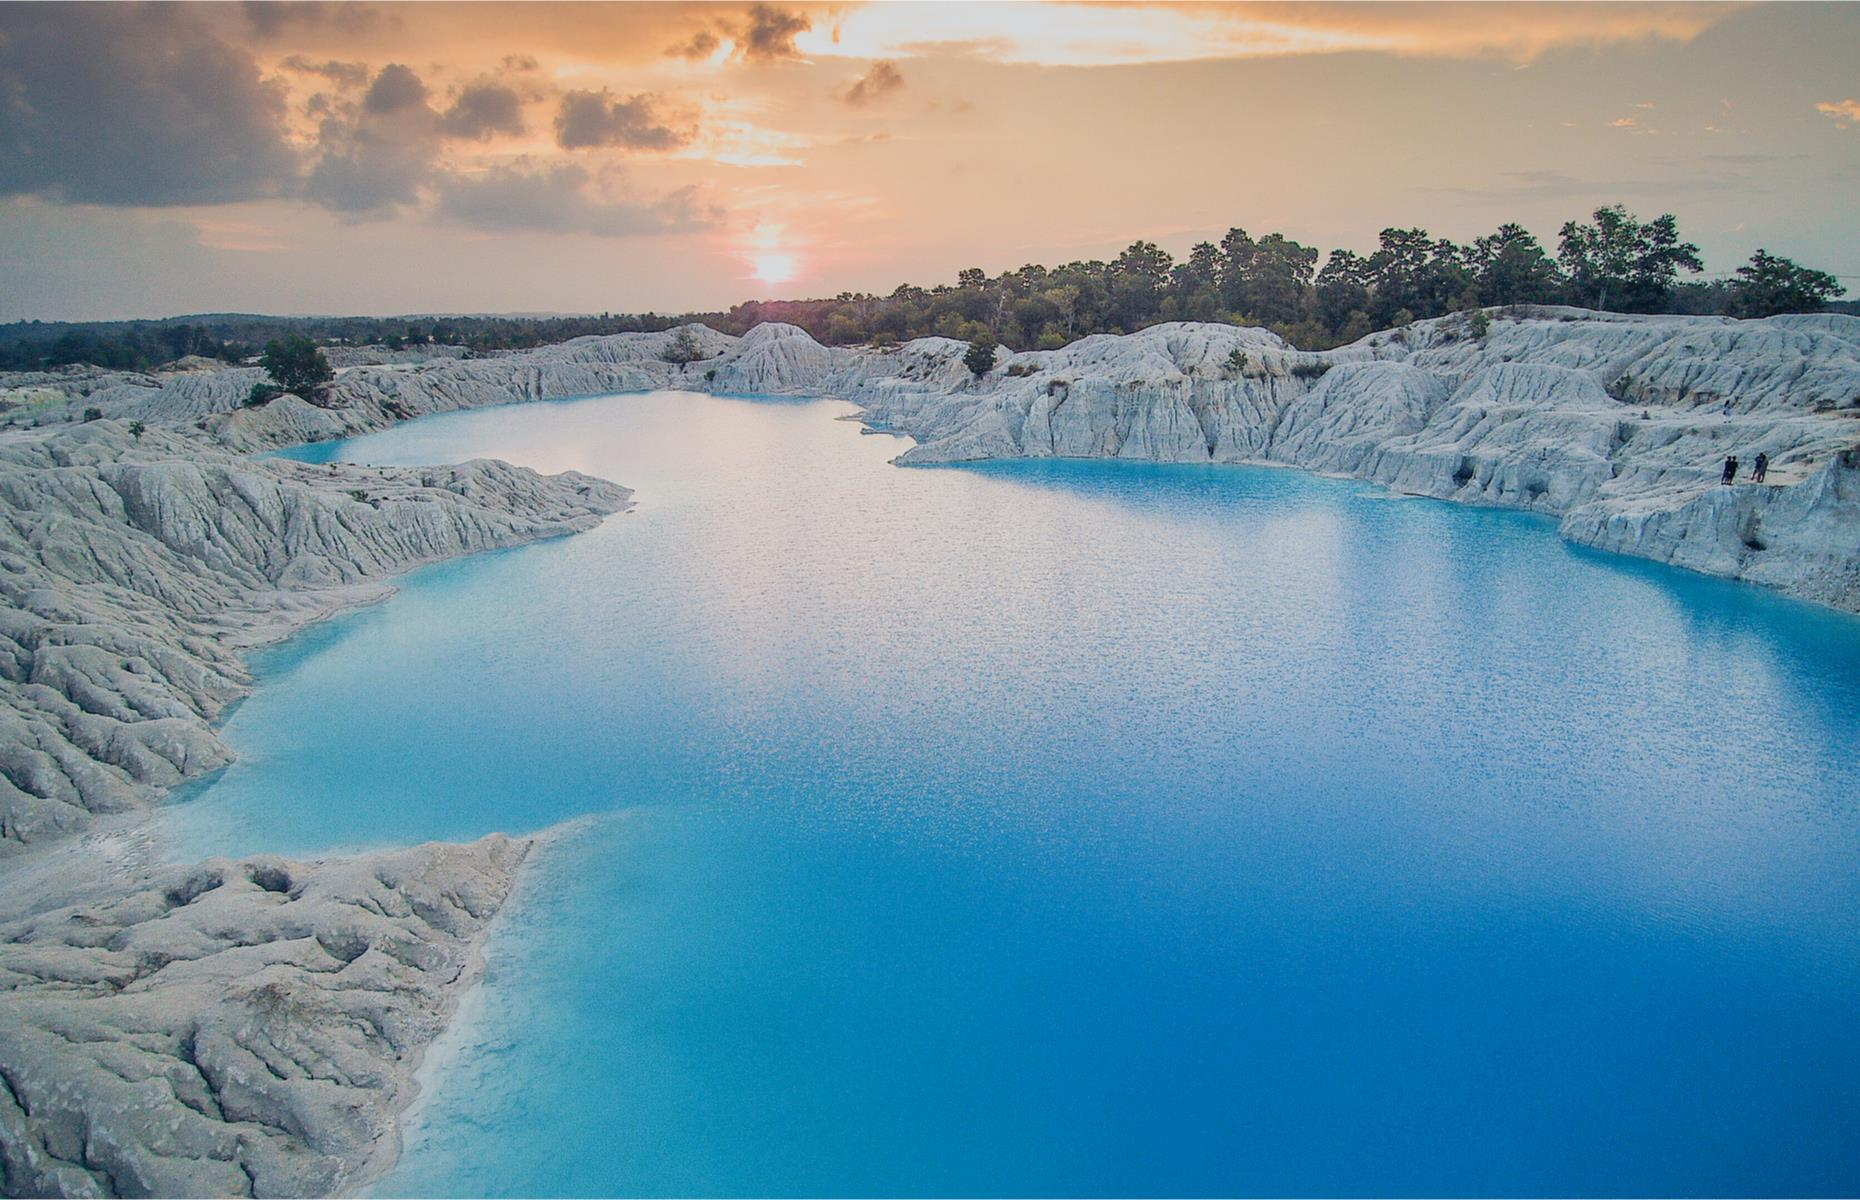 Slide 28 of 31: Indonesia's striking Kaolin Lake is an abandoned quarry which was built to collect industrial minerals needed for cosmetics, toothpaste and paper production, and later flooded. Located on the island of Belitung, its dazzling turquoise expanse is surrounded by mountains of excavated white rocks. Swimming in its waters is reputed to have health benefits.